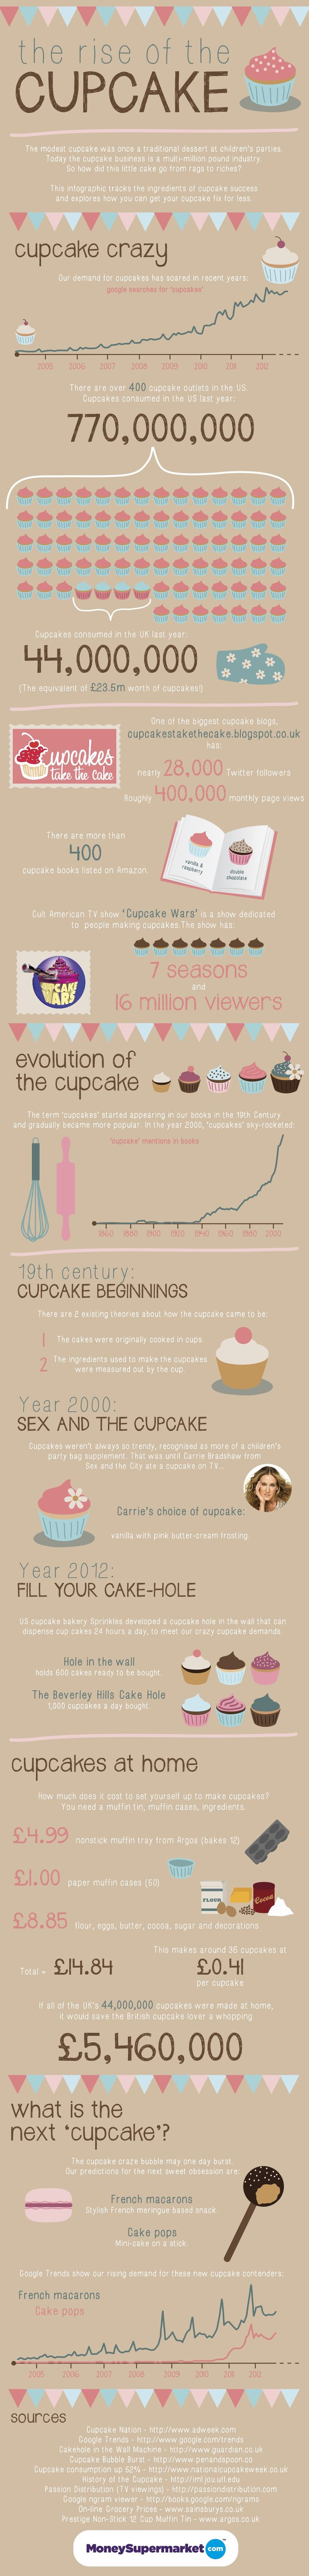 The Rise of the Cupcake (Infographic) - IdealBite